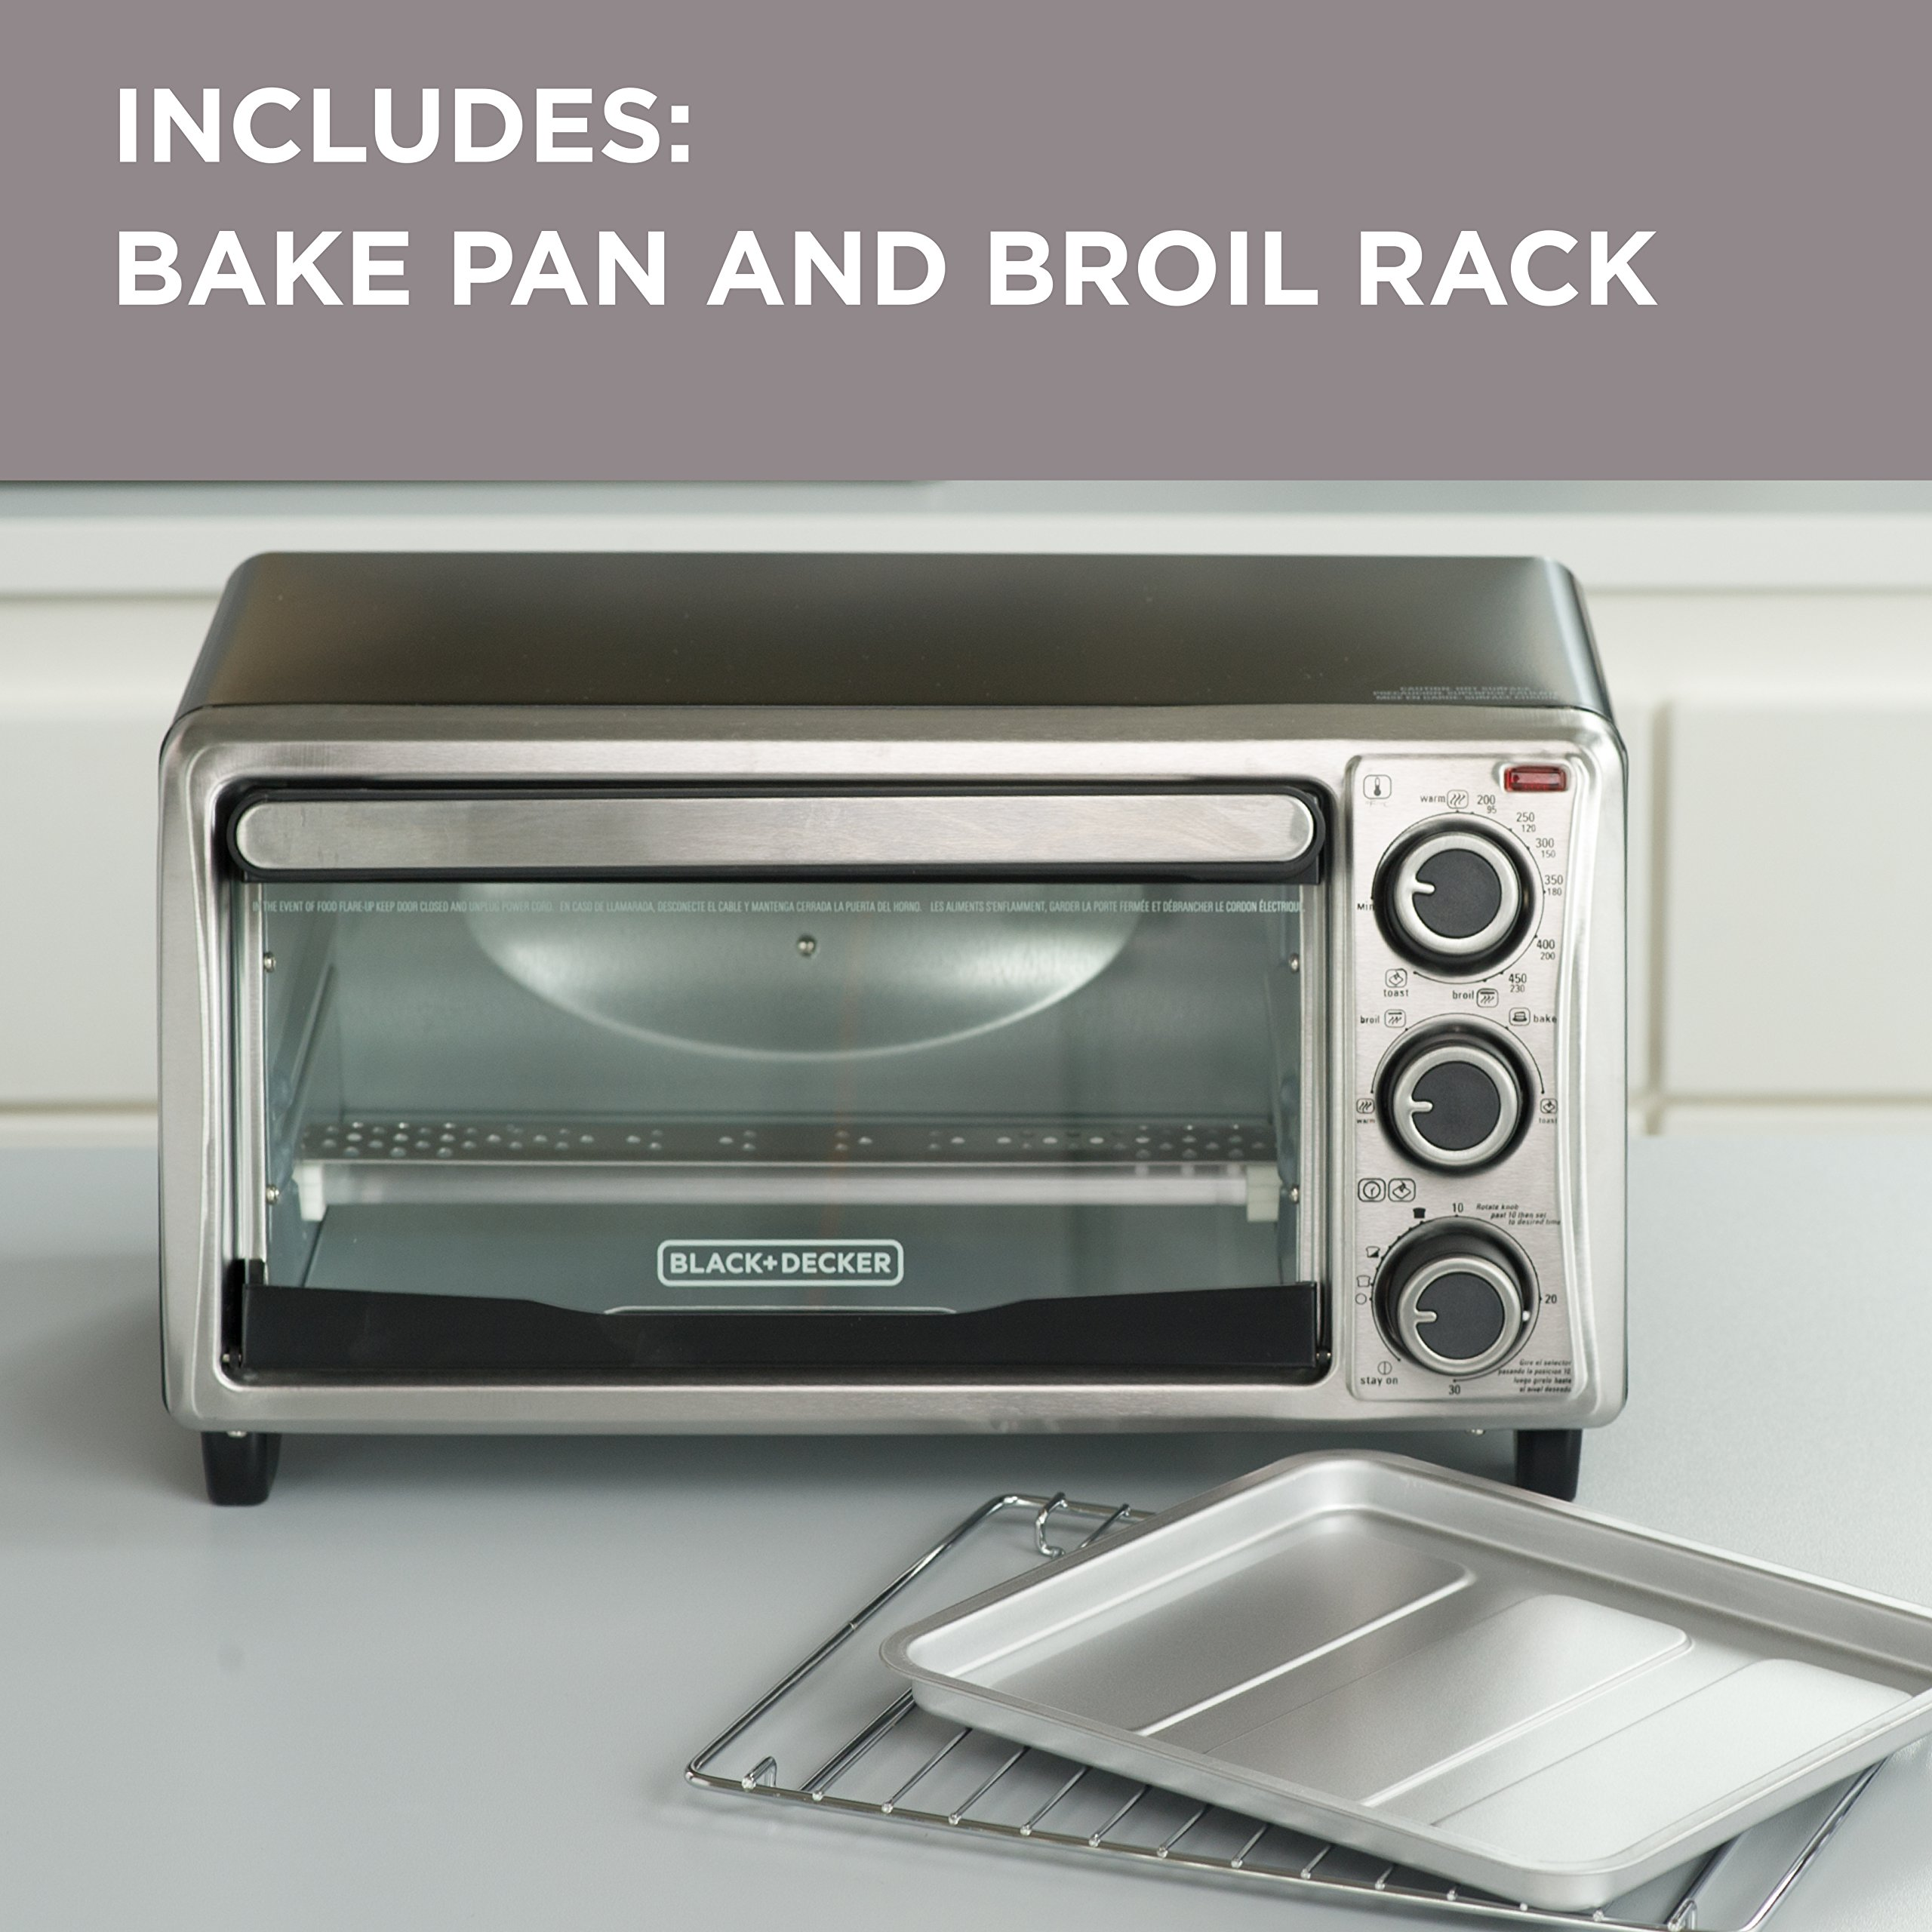 BLACK+DECKER 4-Slice Toaster Oven, Stainless Steel, TO1303SB by BLACK+DECKER (Image #3)